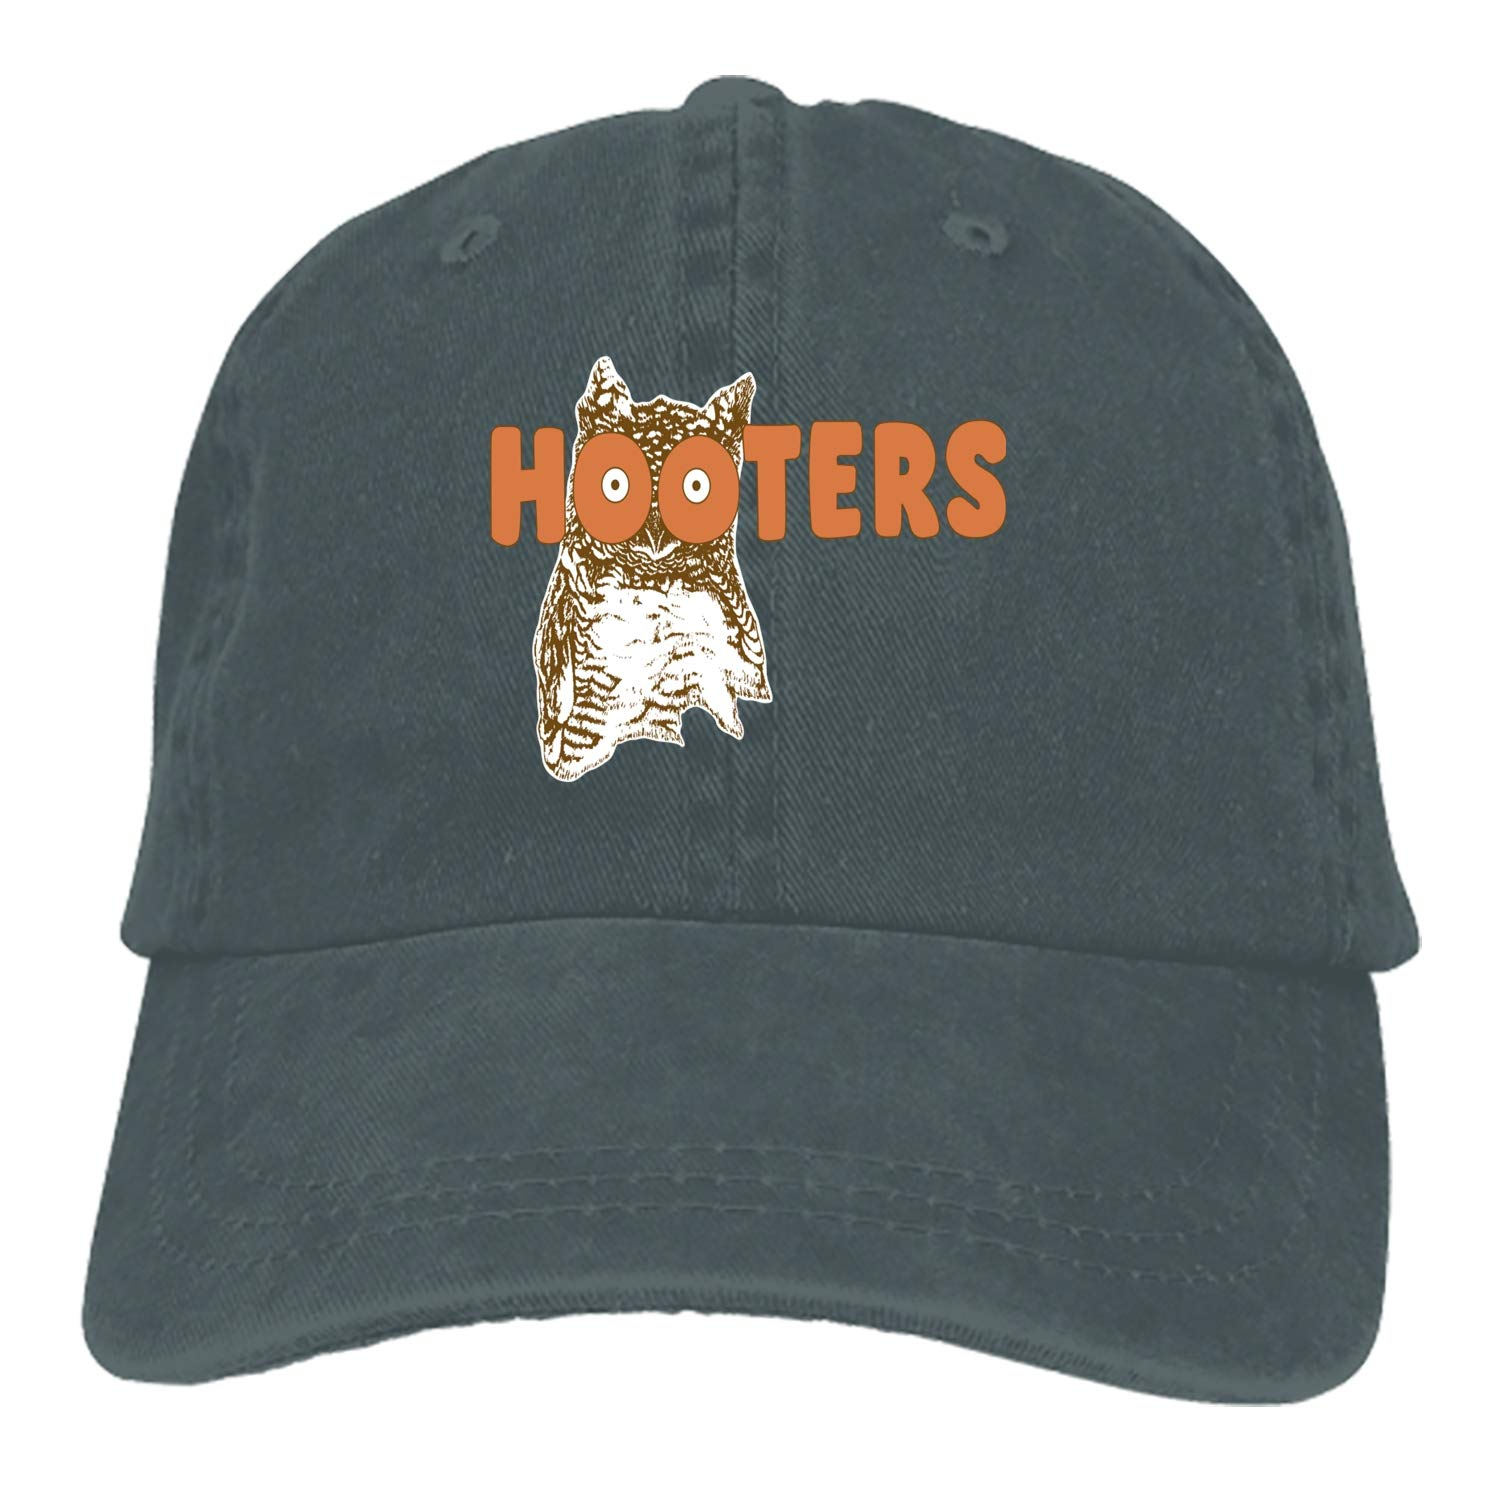 506ed09913dcc CFLY Funny Hooters Denim Cap Cowboy Hat Polo Style Baseball Cap for Men    Women at Amazon Men s Clothing store